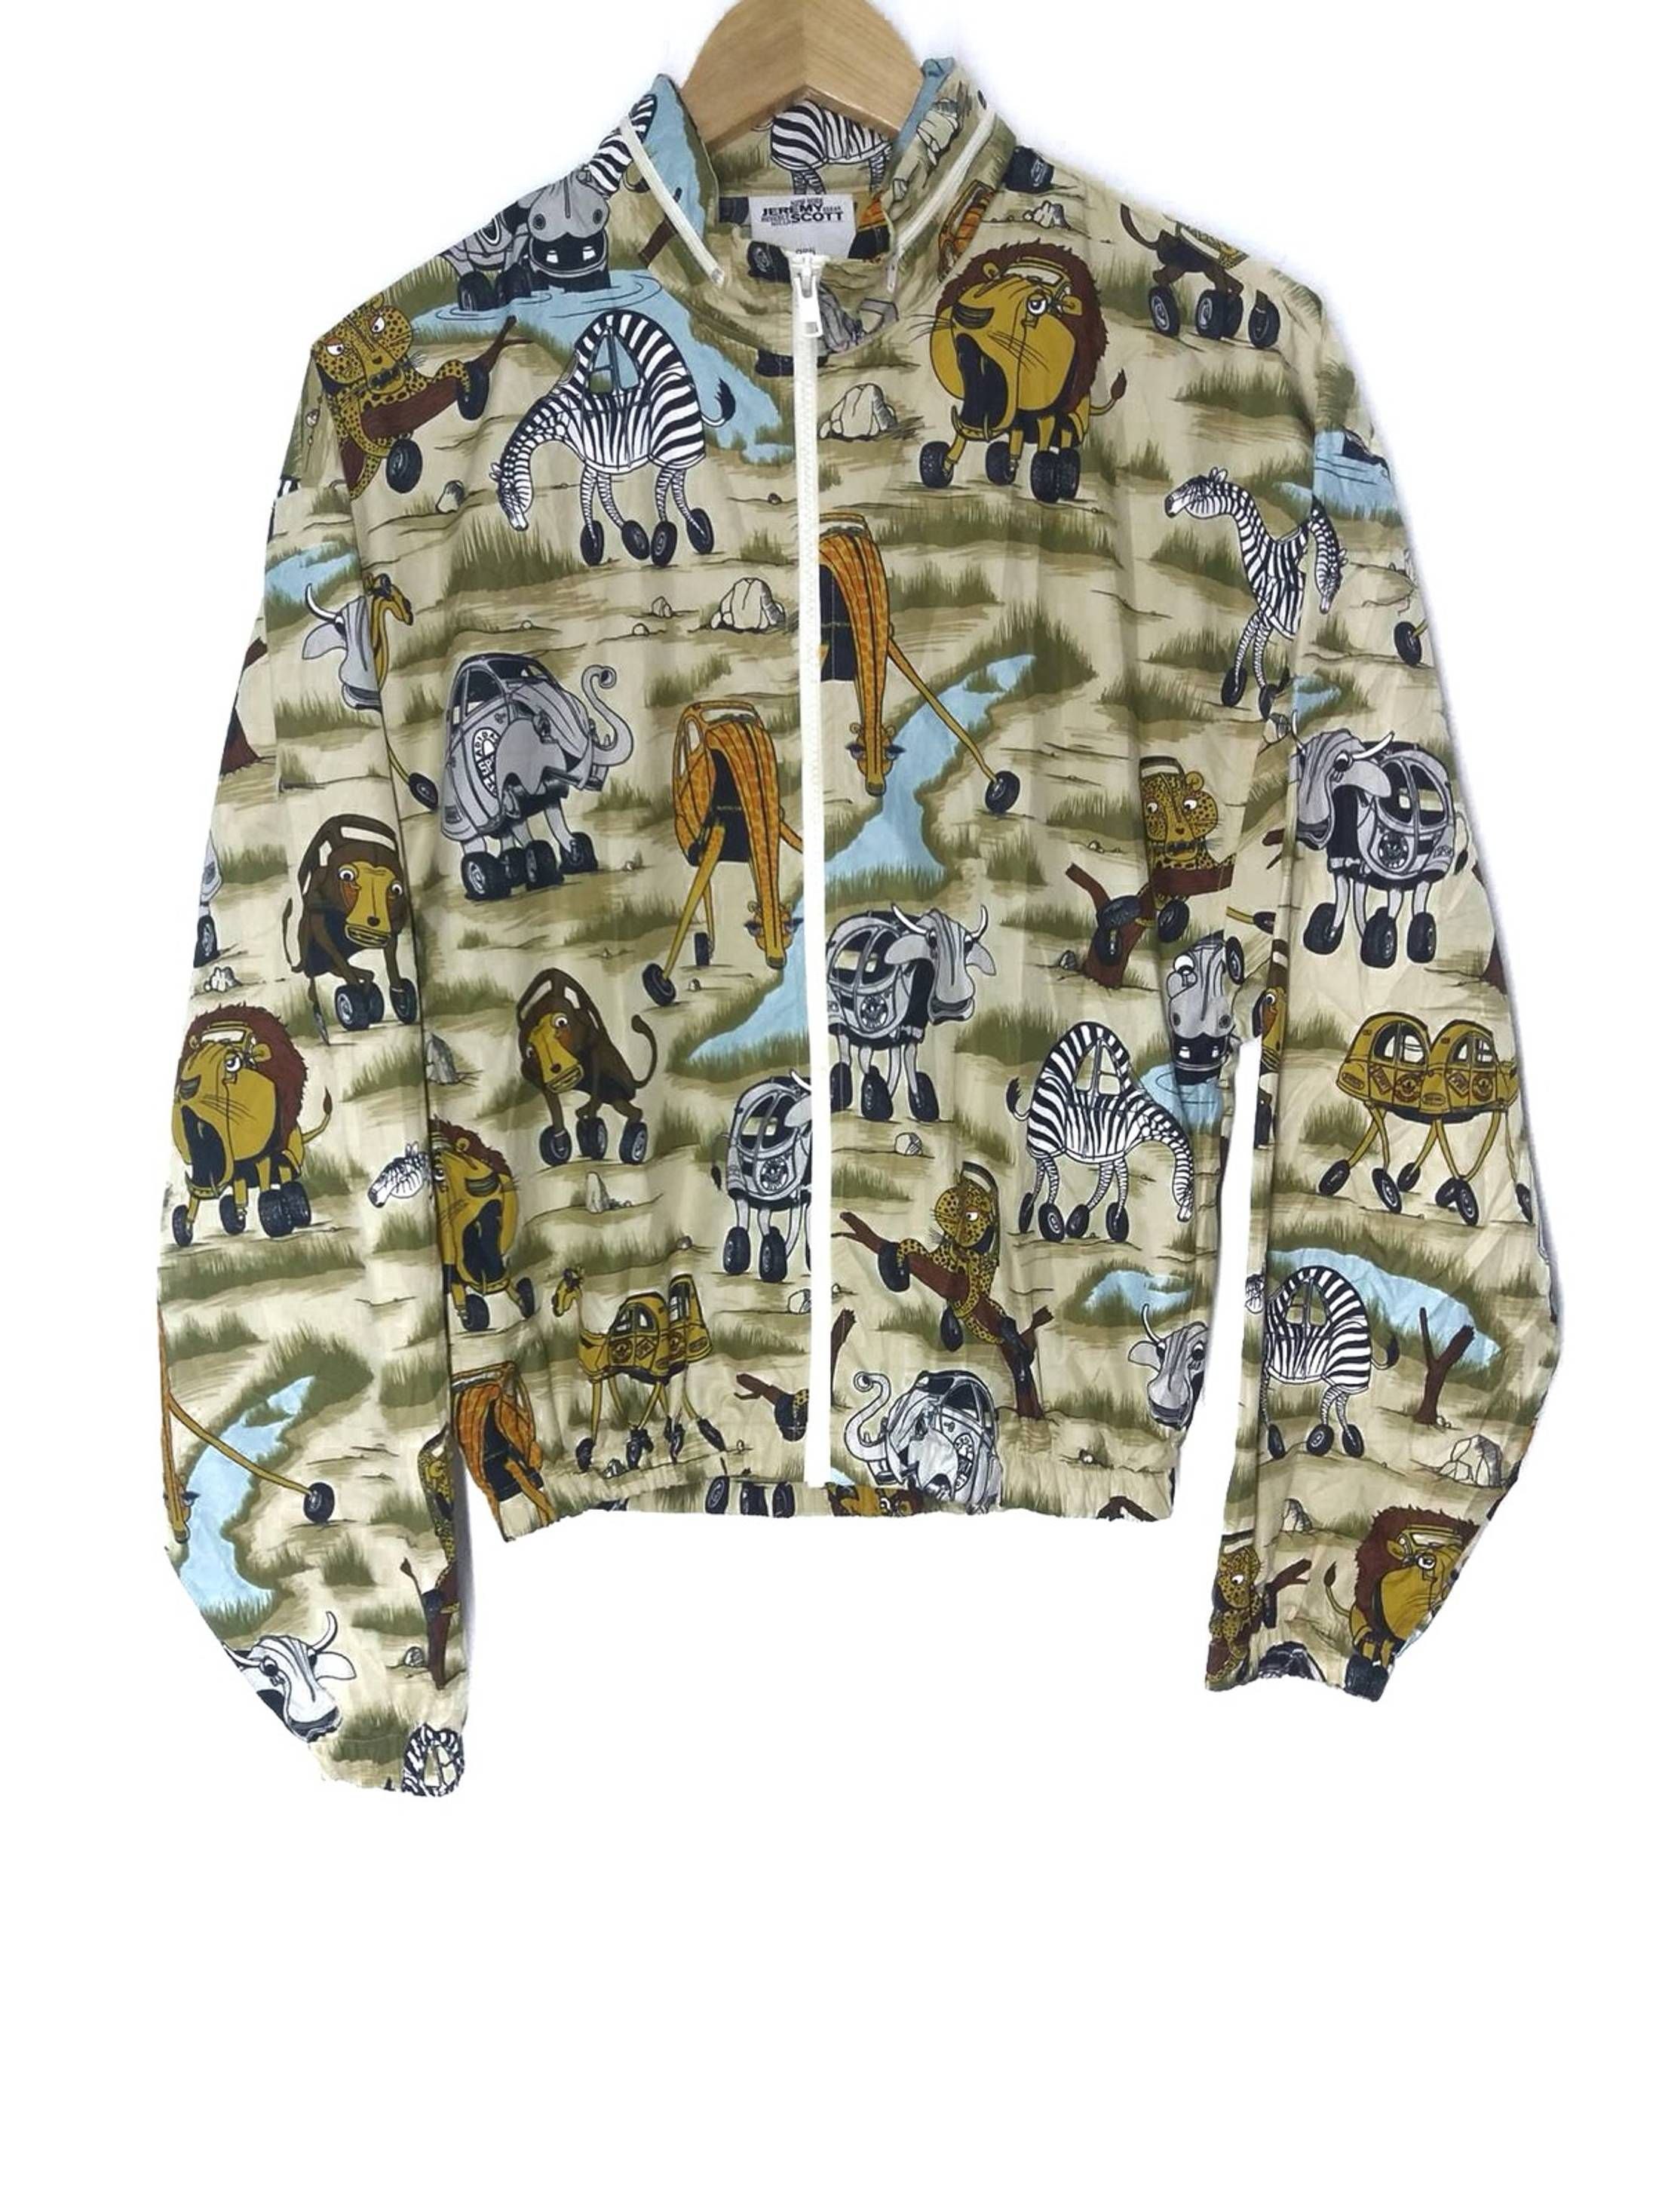 Adidas Jeremy Scott X Adidas Animal Graphic Hoodie Jacket Size US M   EU  48-50   2 - 1 1fd3ef2f2dac